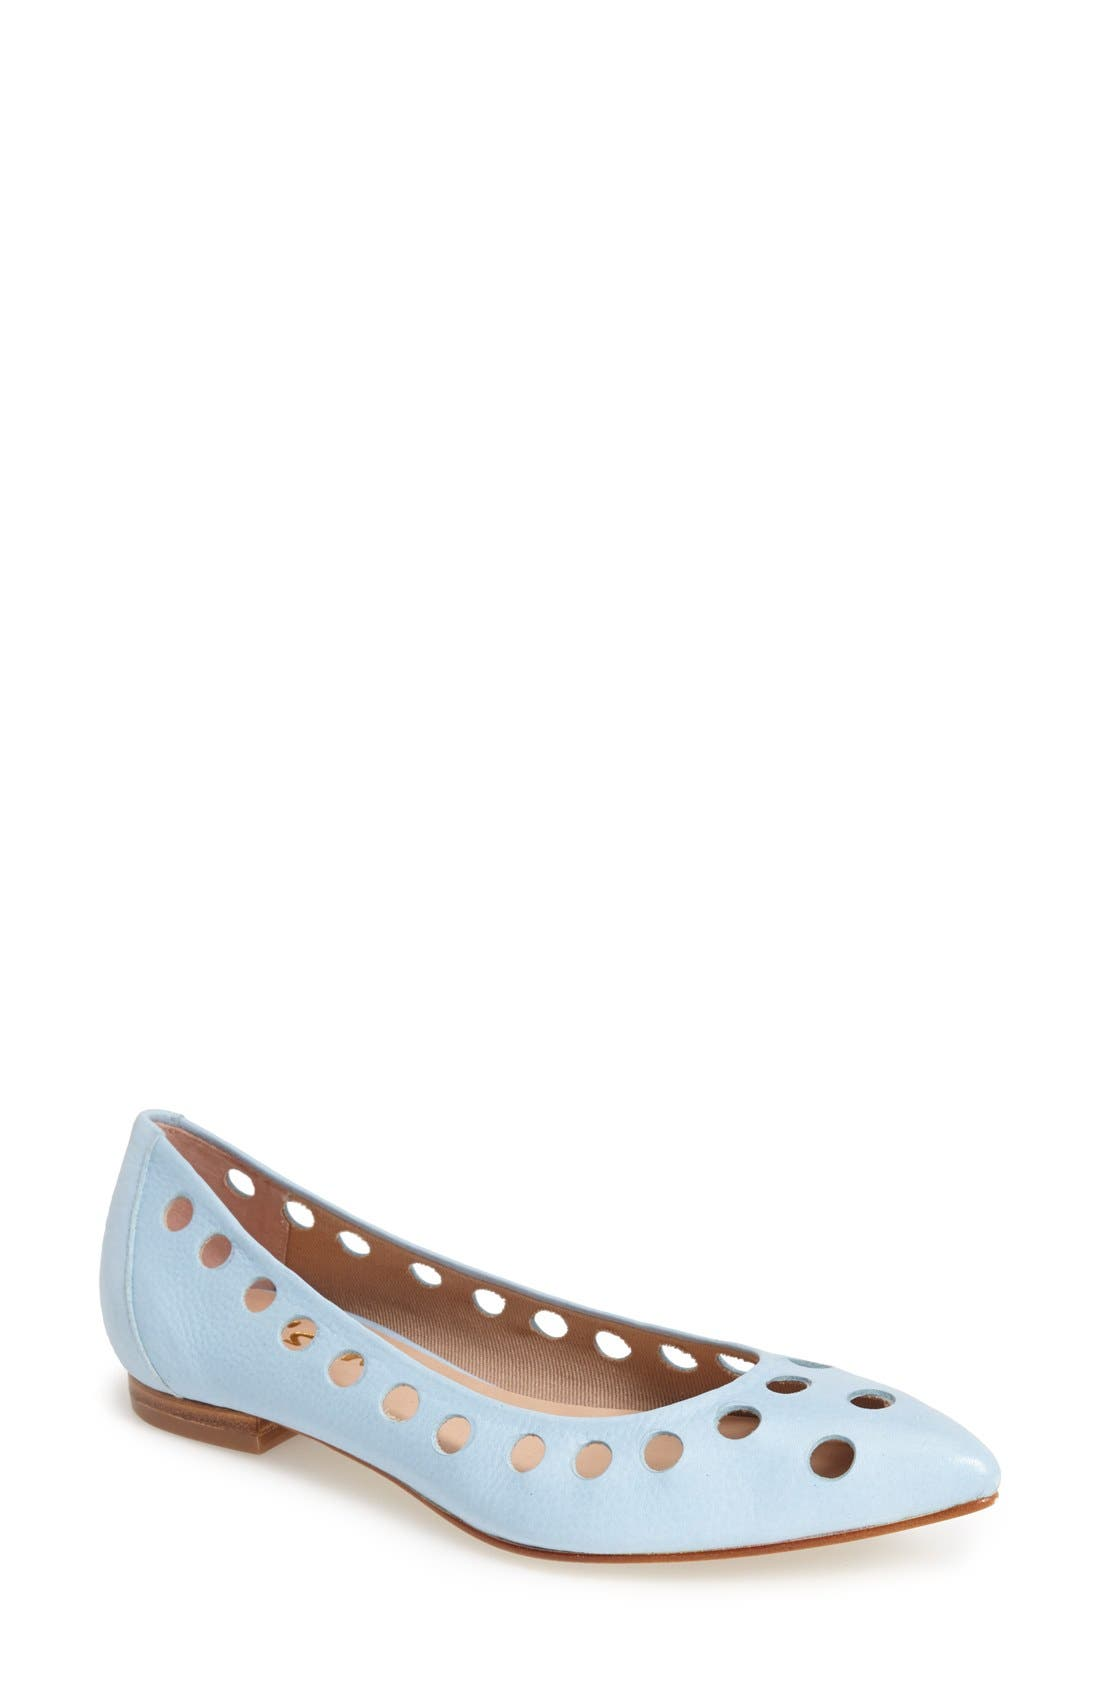 Alternate Image 1 Selected - French Sole 'Naught' Laser Cut Ballet Flats (Women)